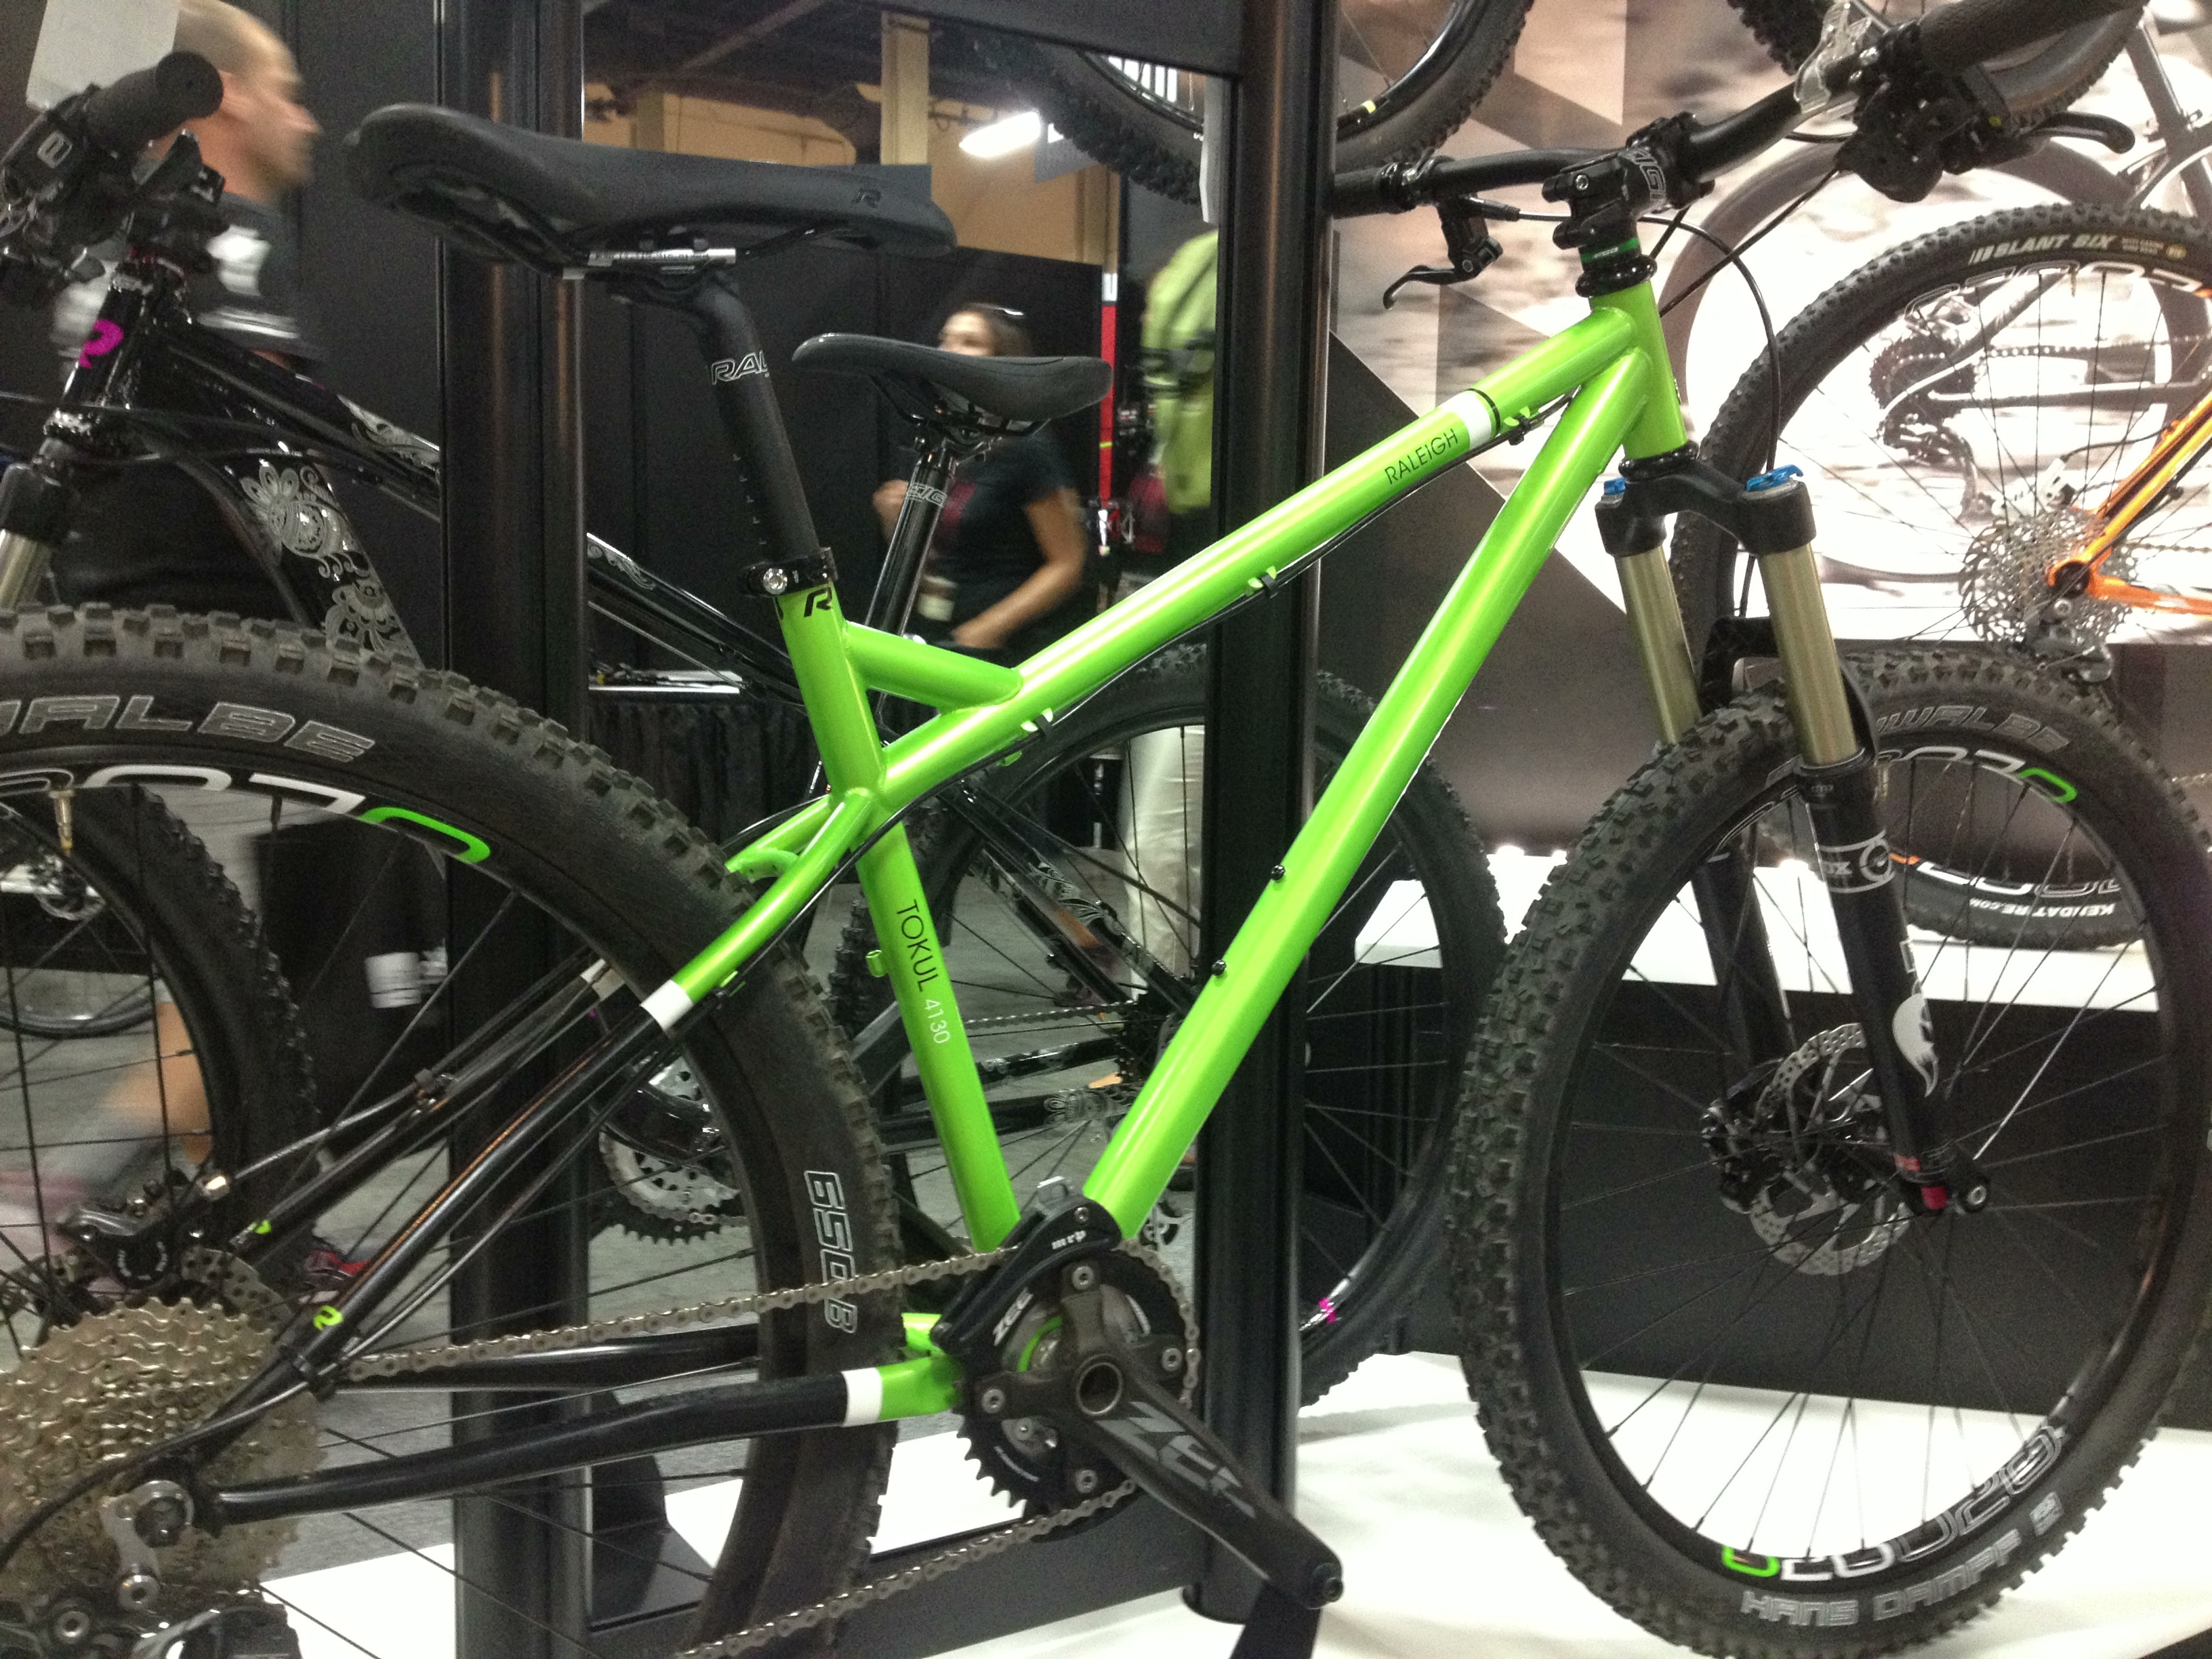 Interbike 2013 New And Improved Mountain Bikes From